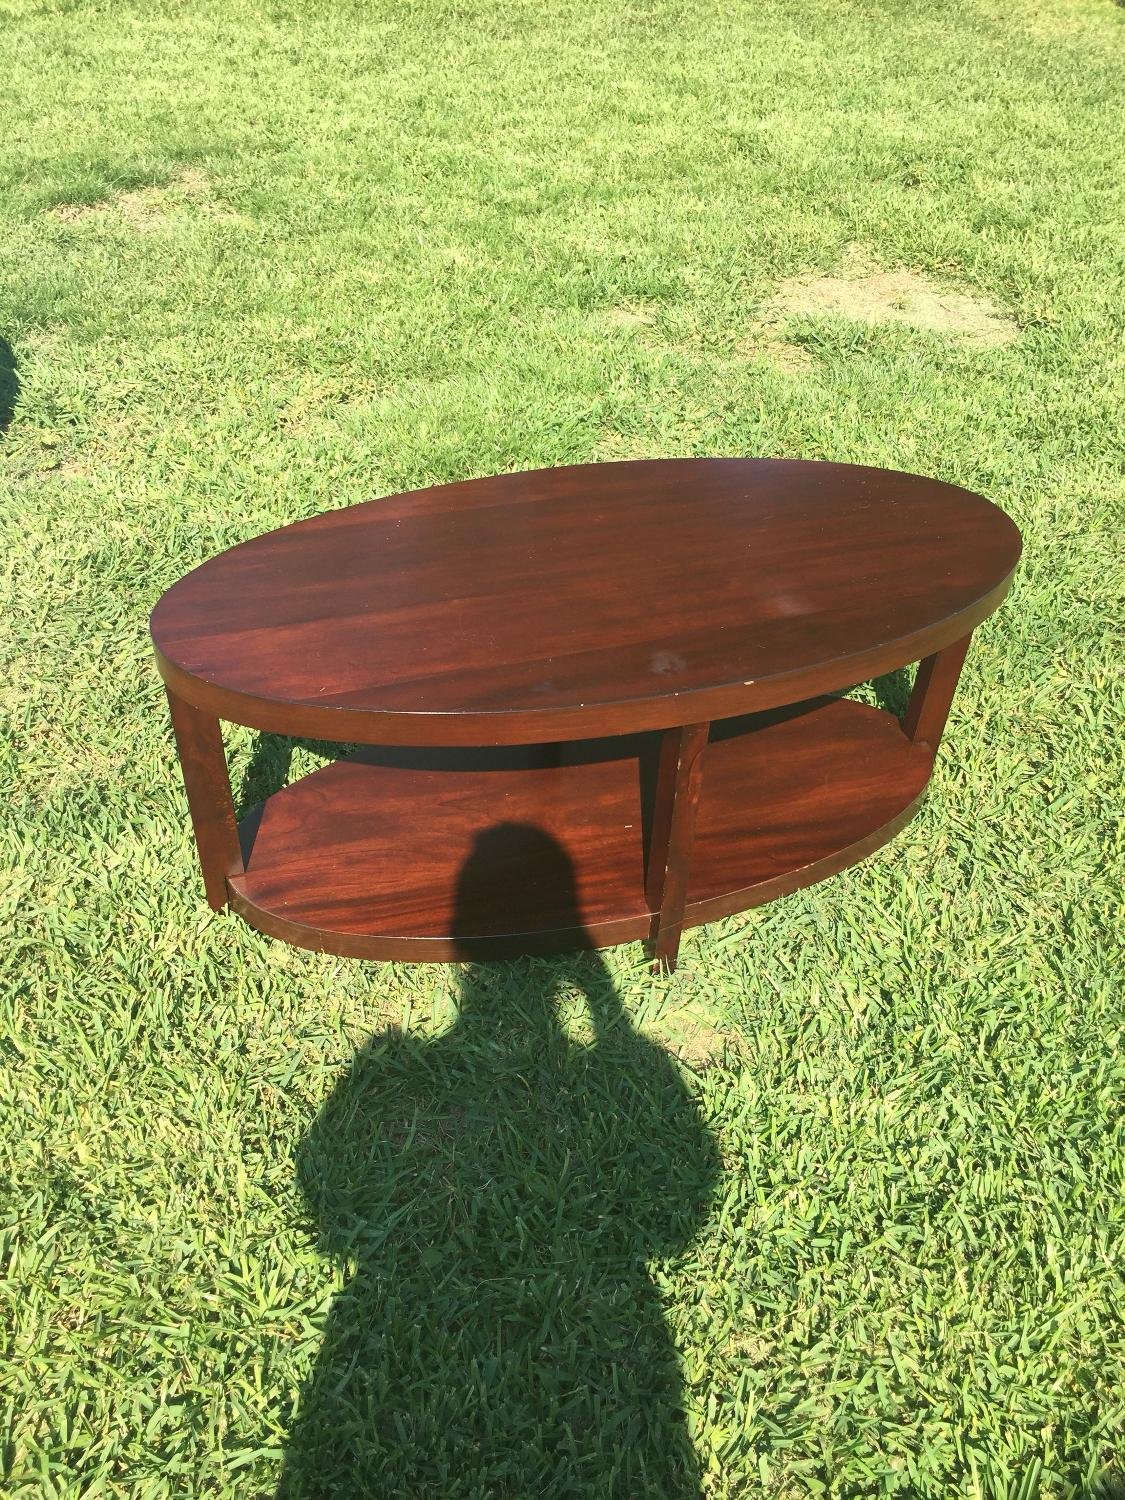 Best Fall Sale: Pier 1 - Oval 2-tier Coffee Table for sale in Metairie, Louisiana for 2019